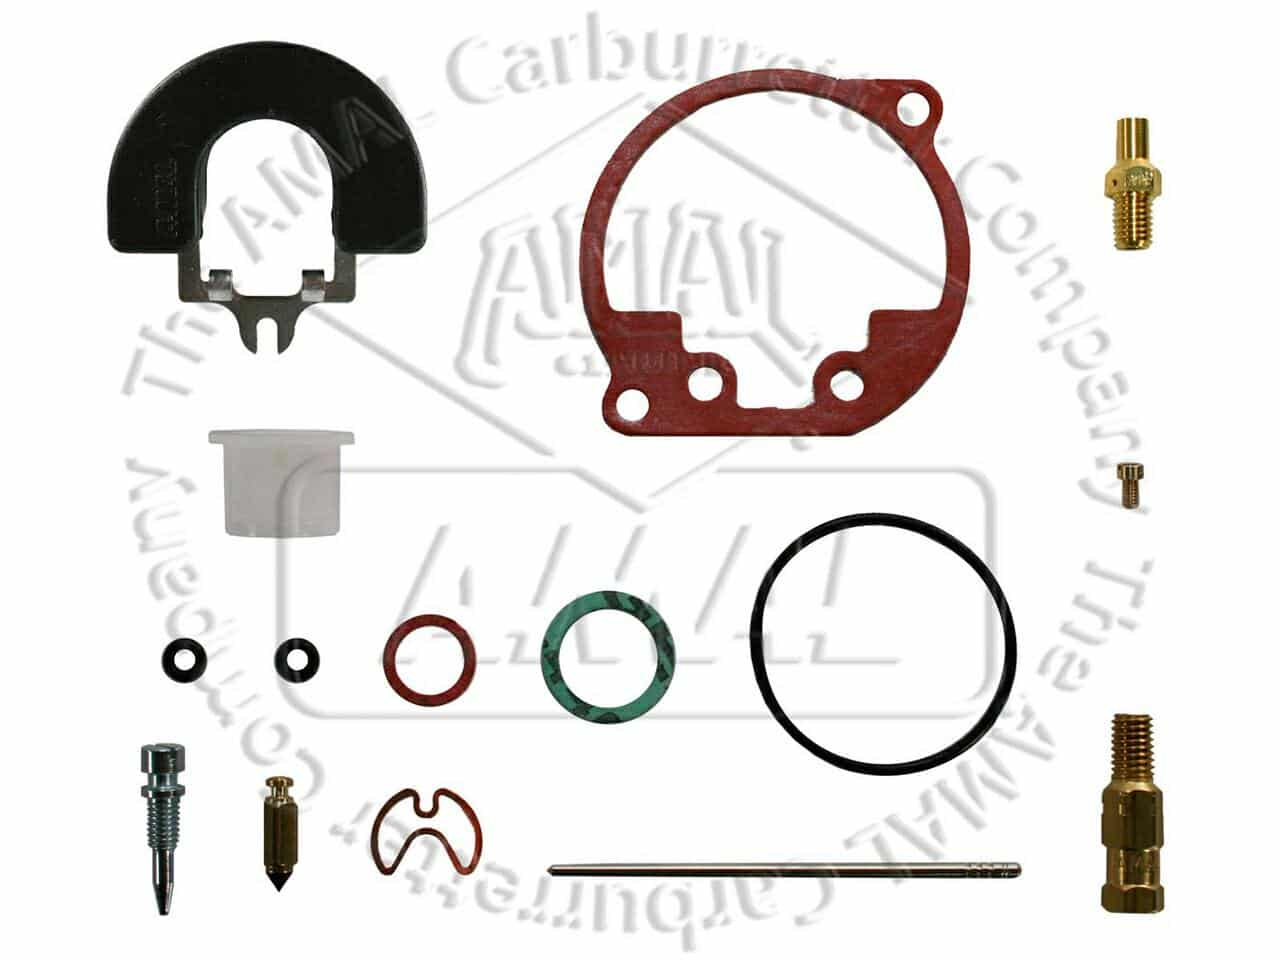 RKC/561 Amal major concentric carburettor repair kit with Stay Up float - Classic Bike Spares